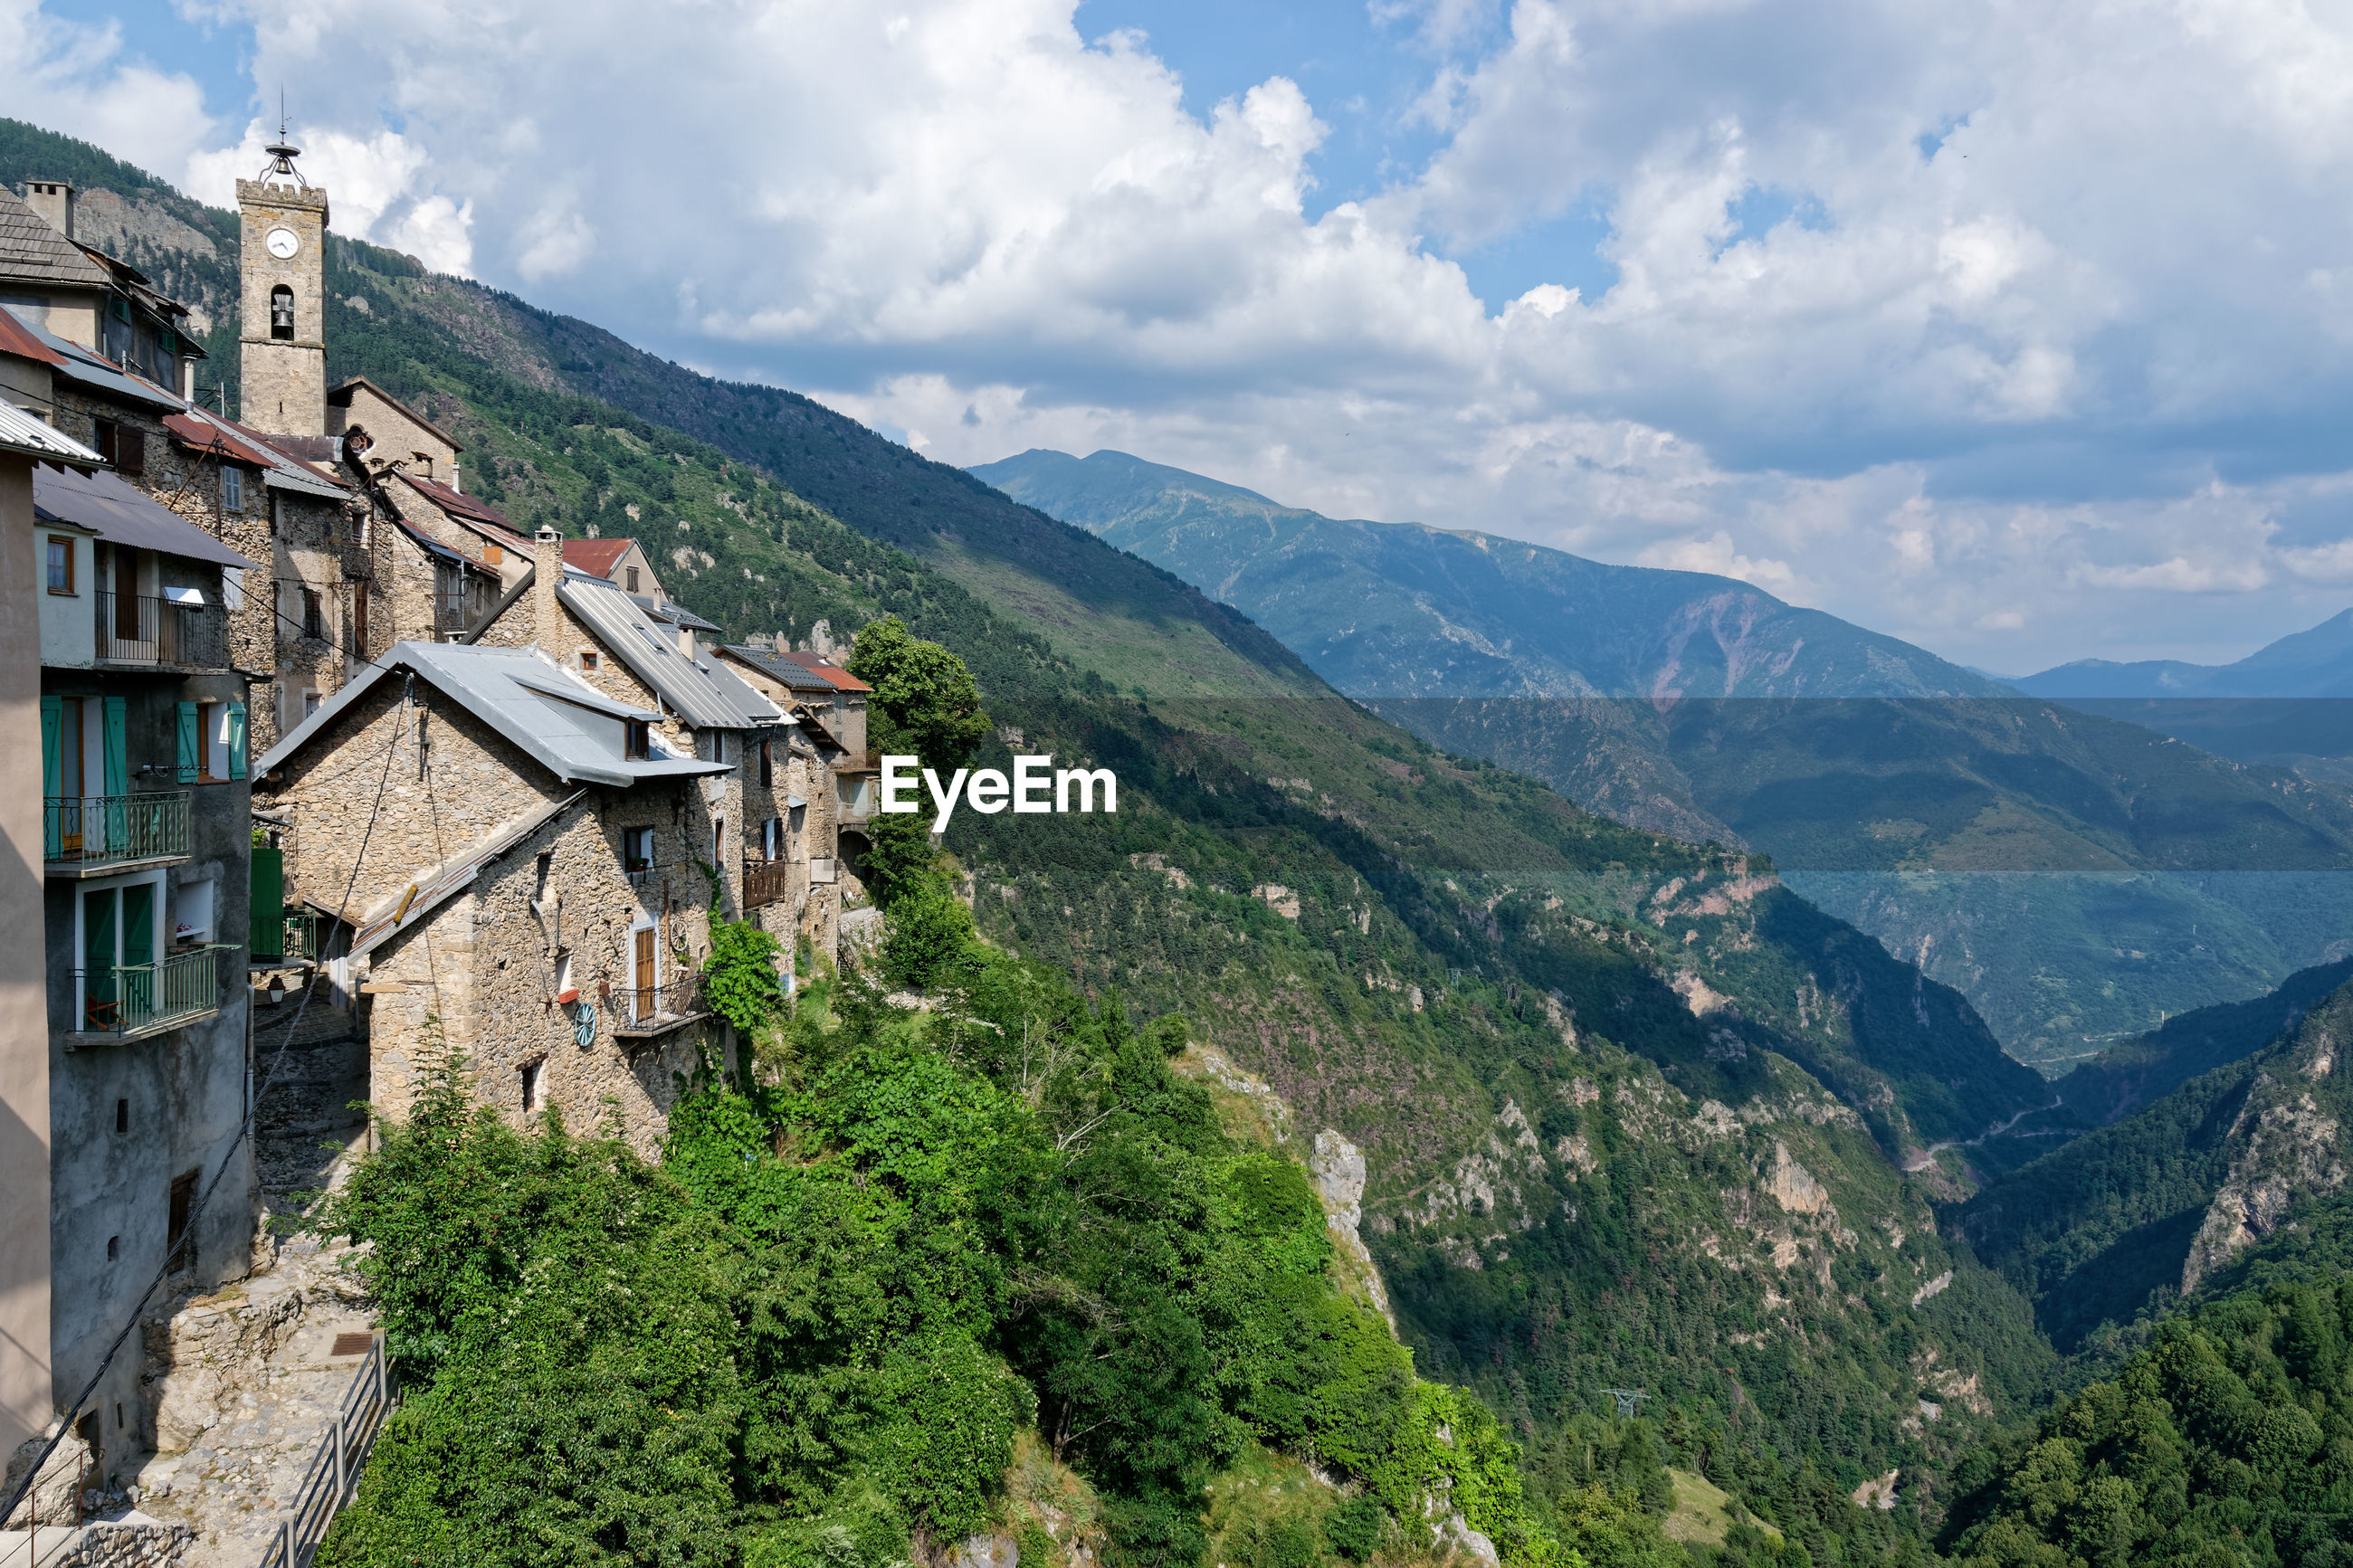 SCENIC VIEW OF MOUNTAINS AND BUILDINGS AGAINST SKY